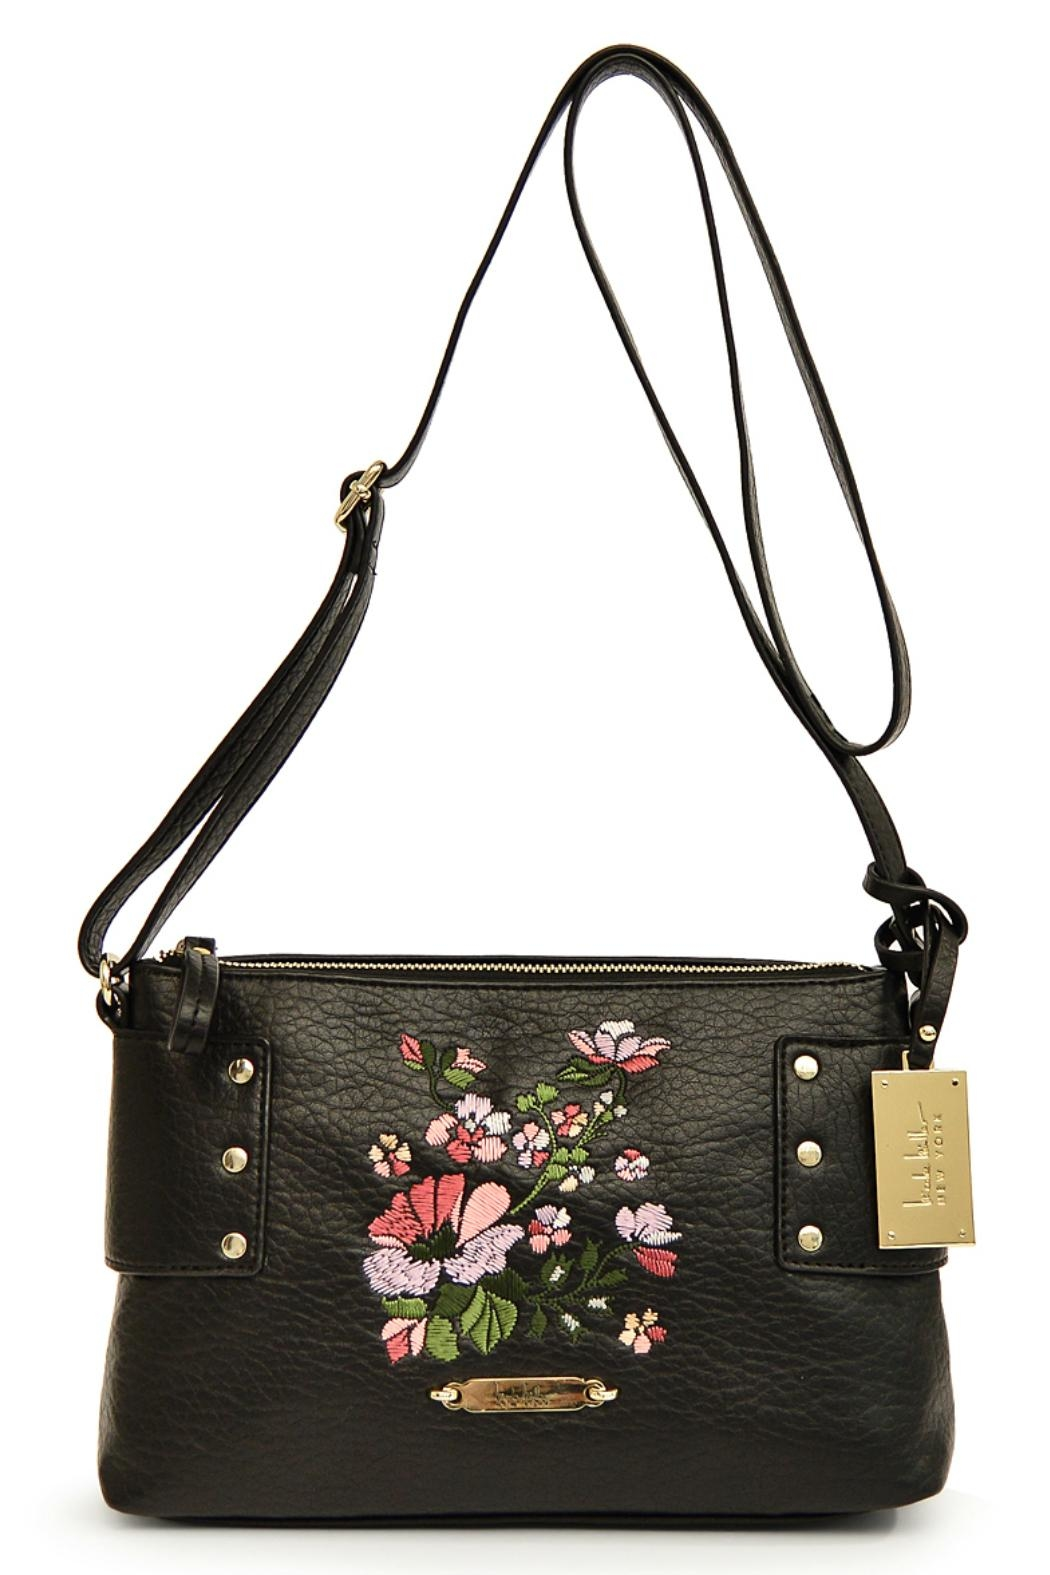 Nicole Miller Floral Embroidered Crossbody from Kentucky by Mimi s ... 6303ab1313471